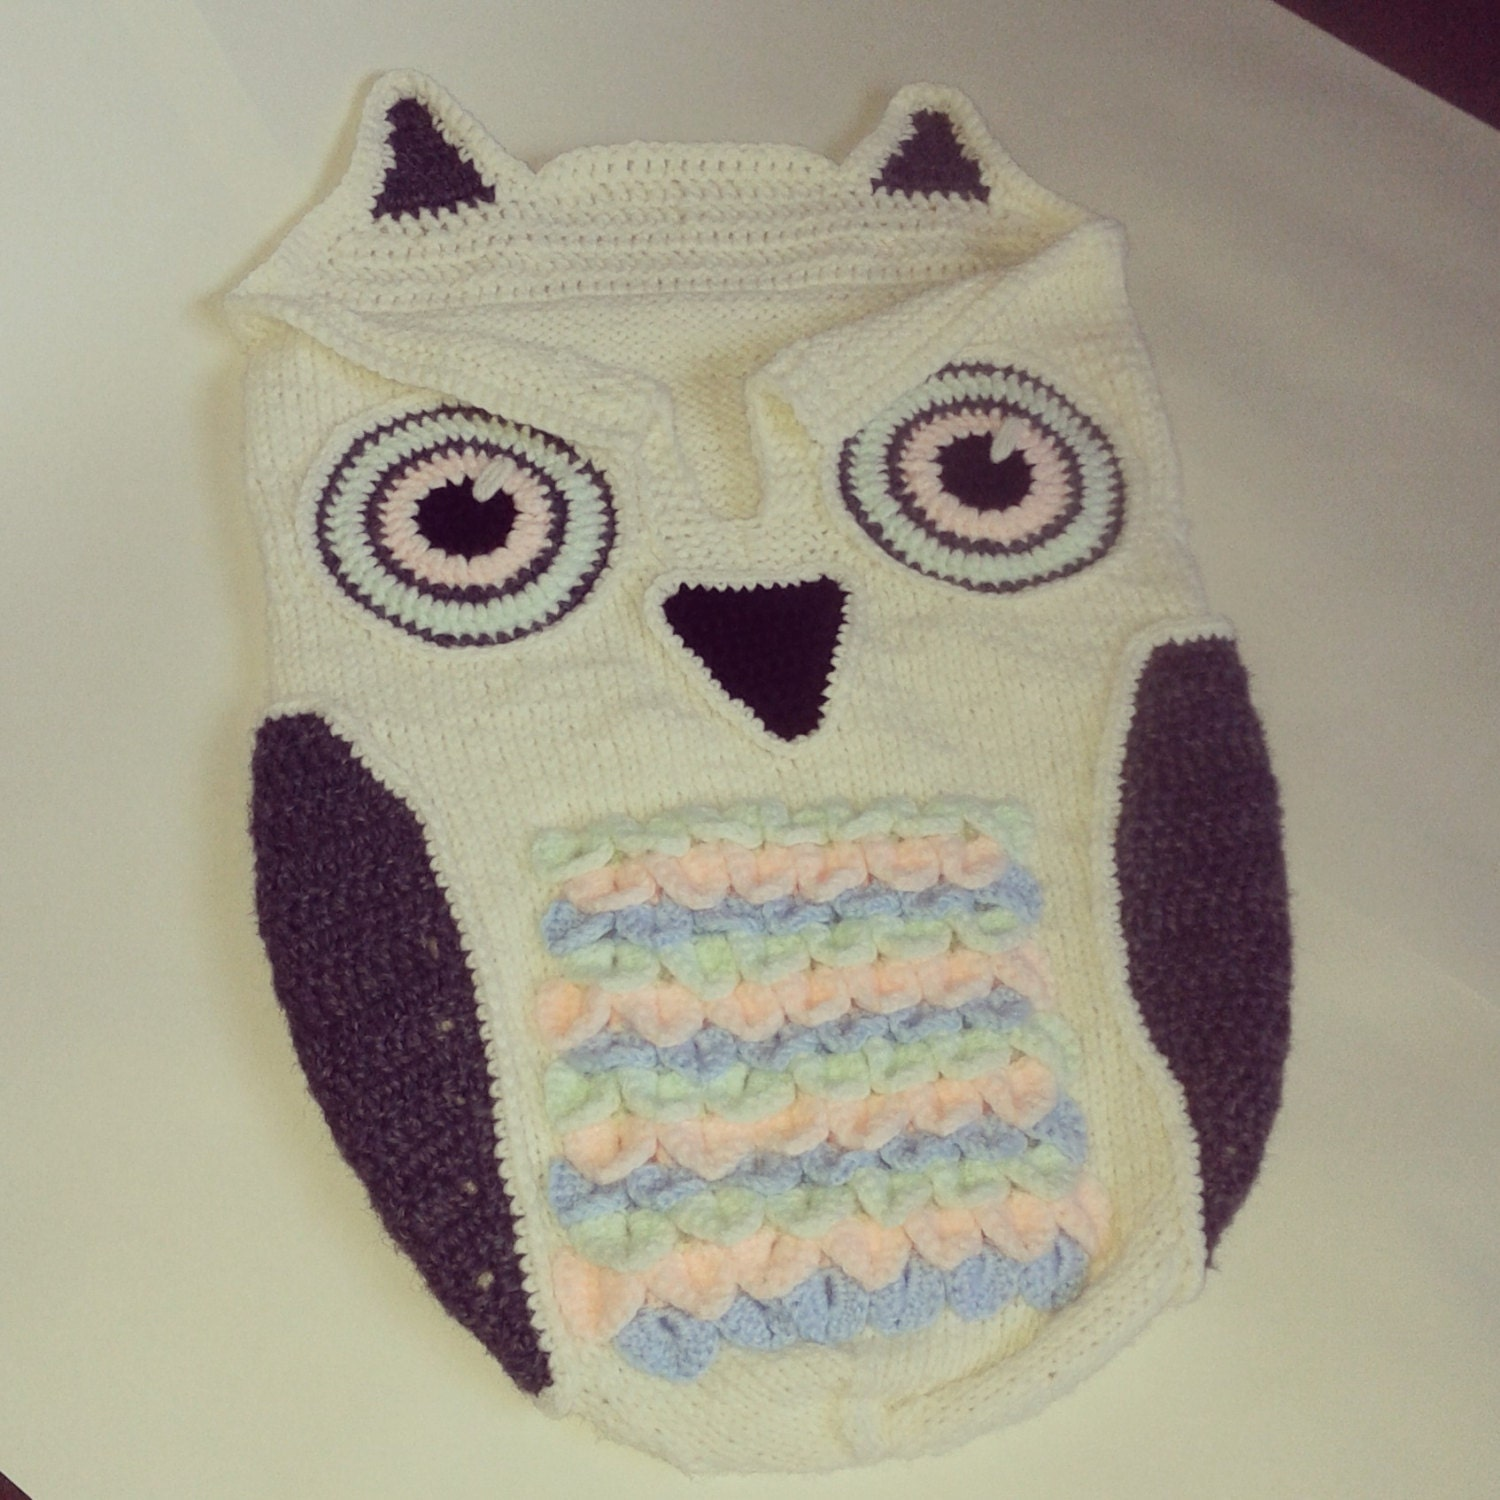 Baby knitted cocoon with owl crochet details by TheMorningWhisper